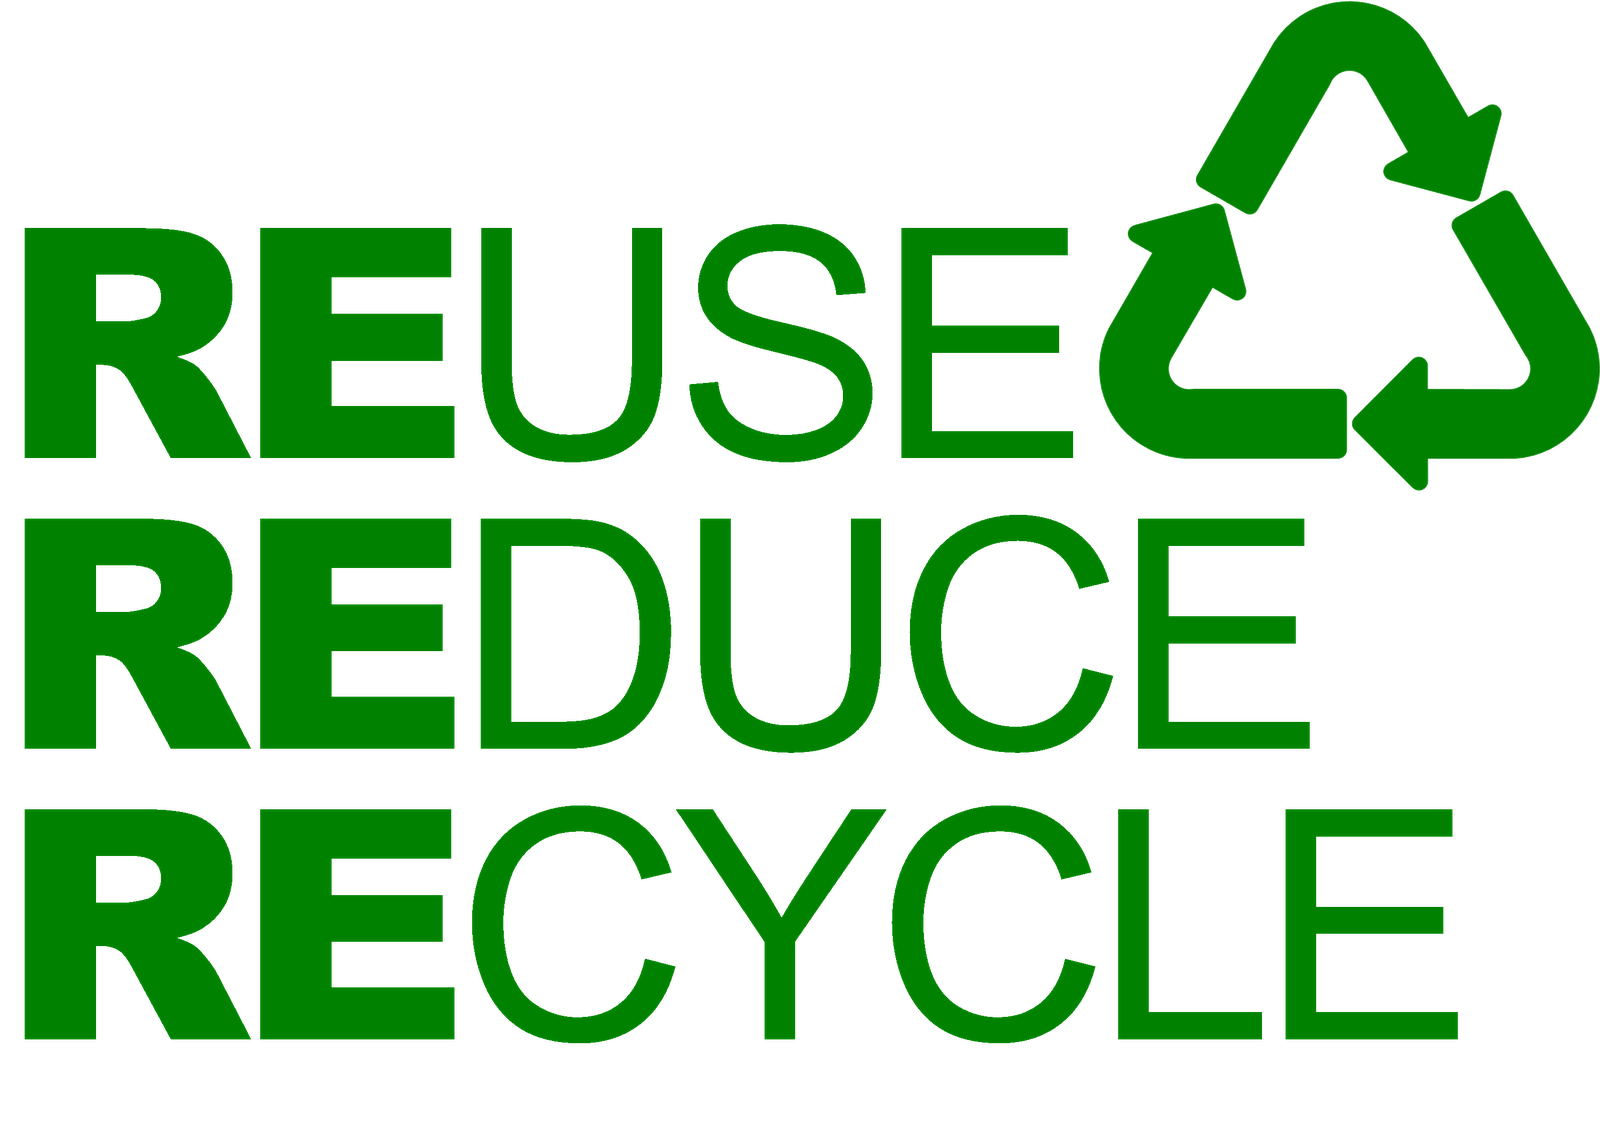 ReduceRecycle